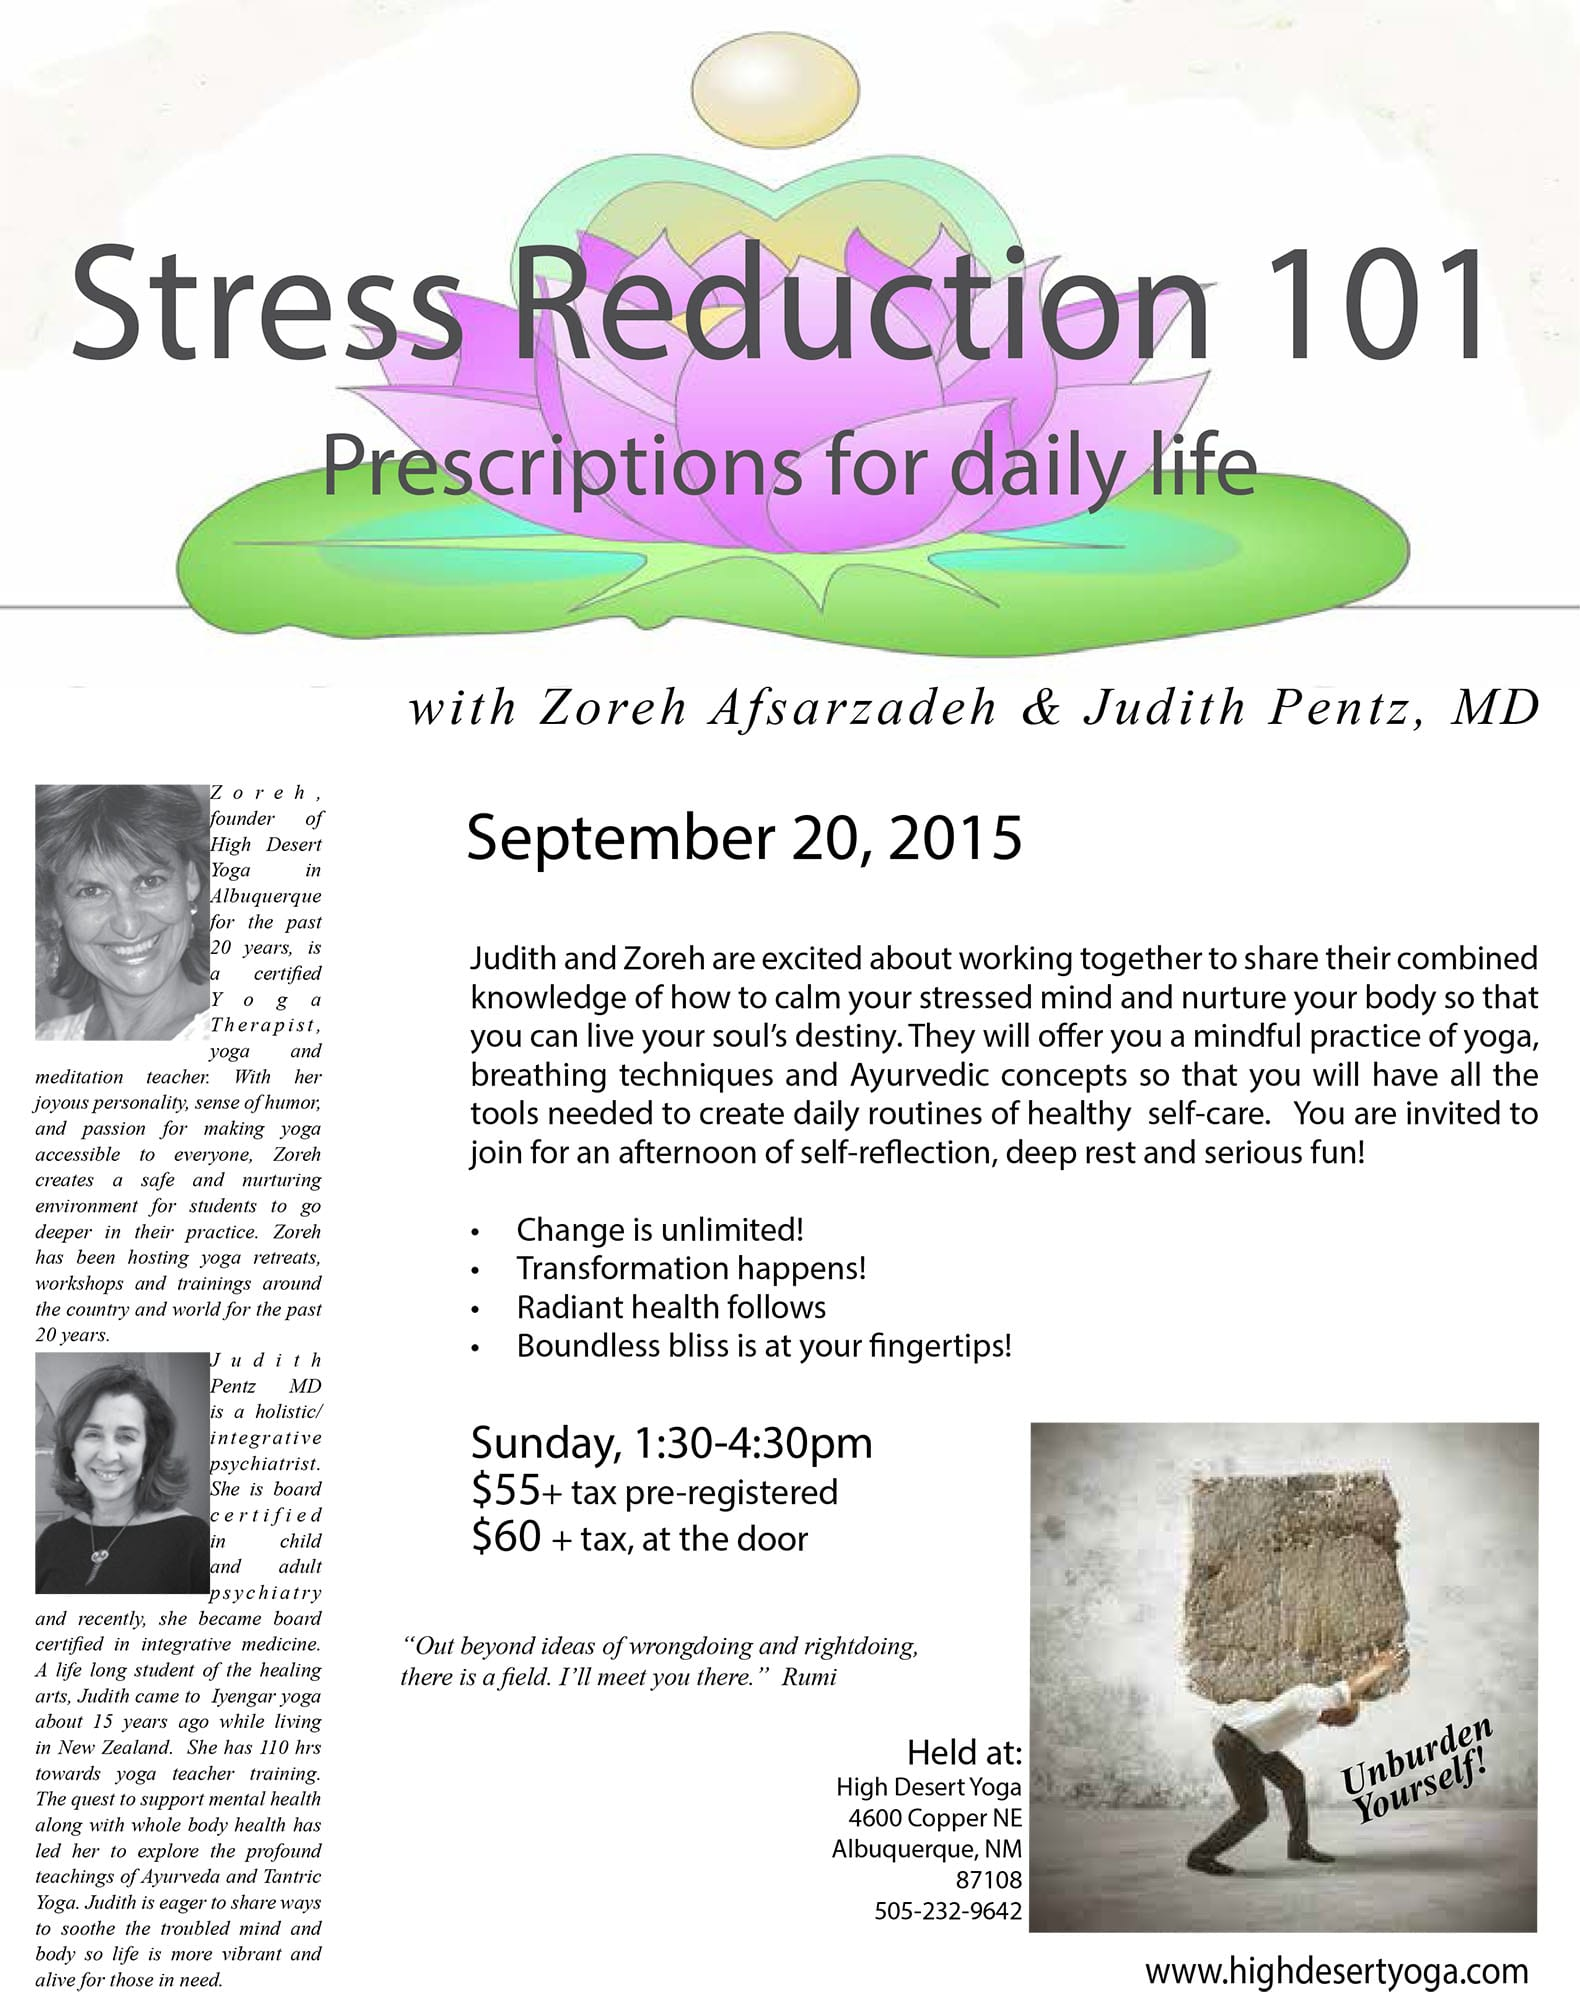 Stress Reduction 101: Prescriptions for a Daily Life